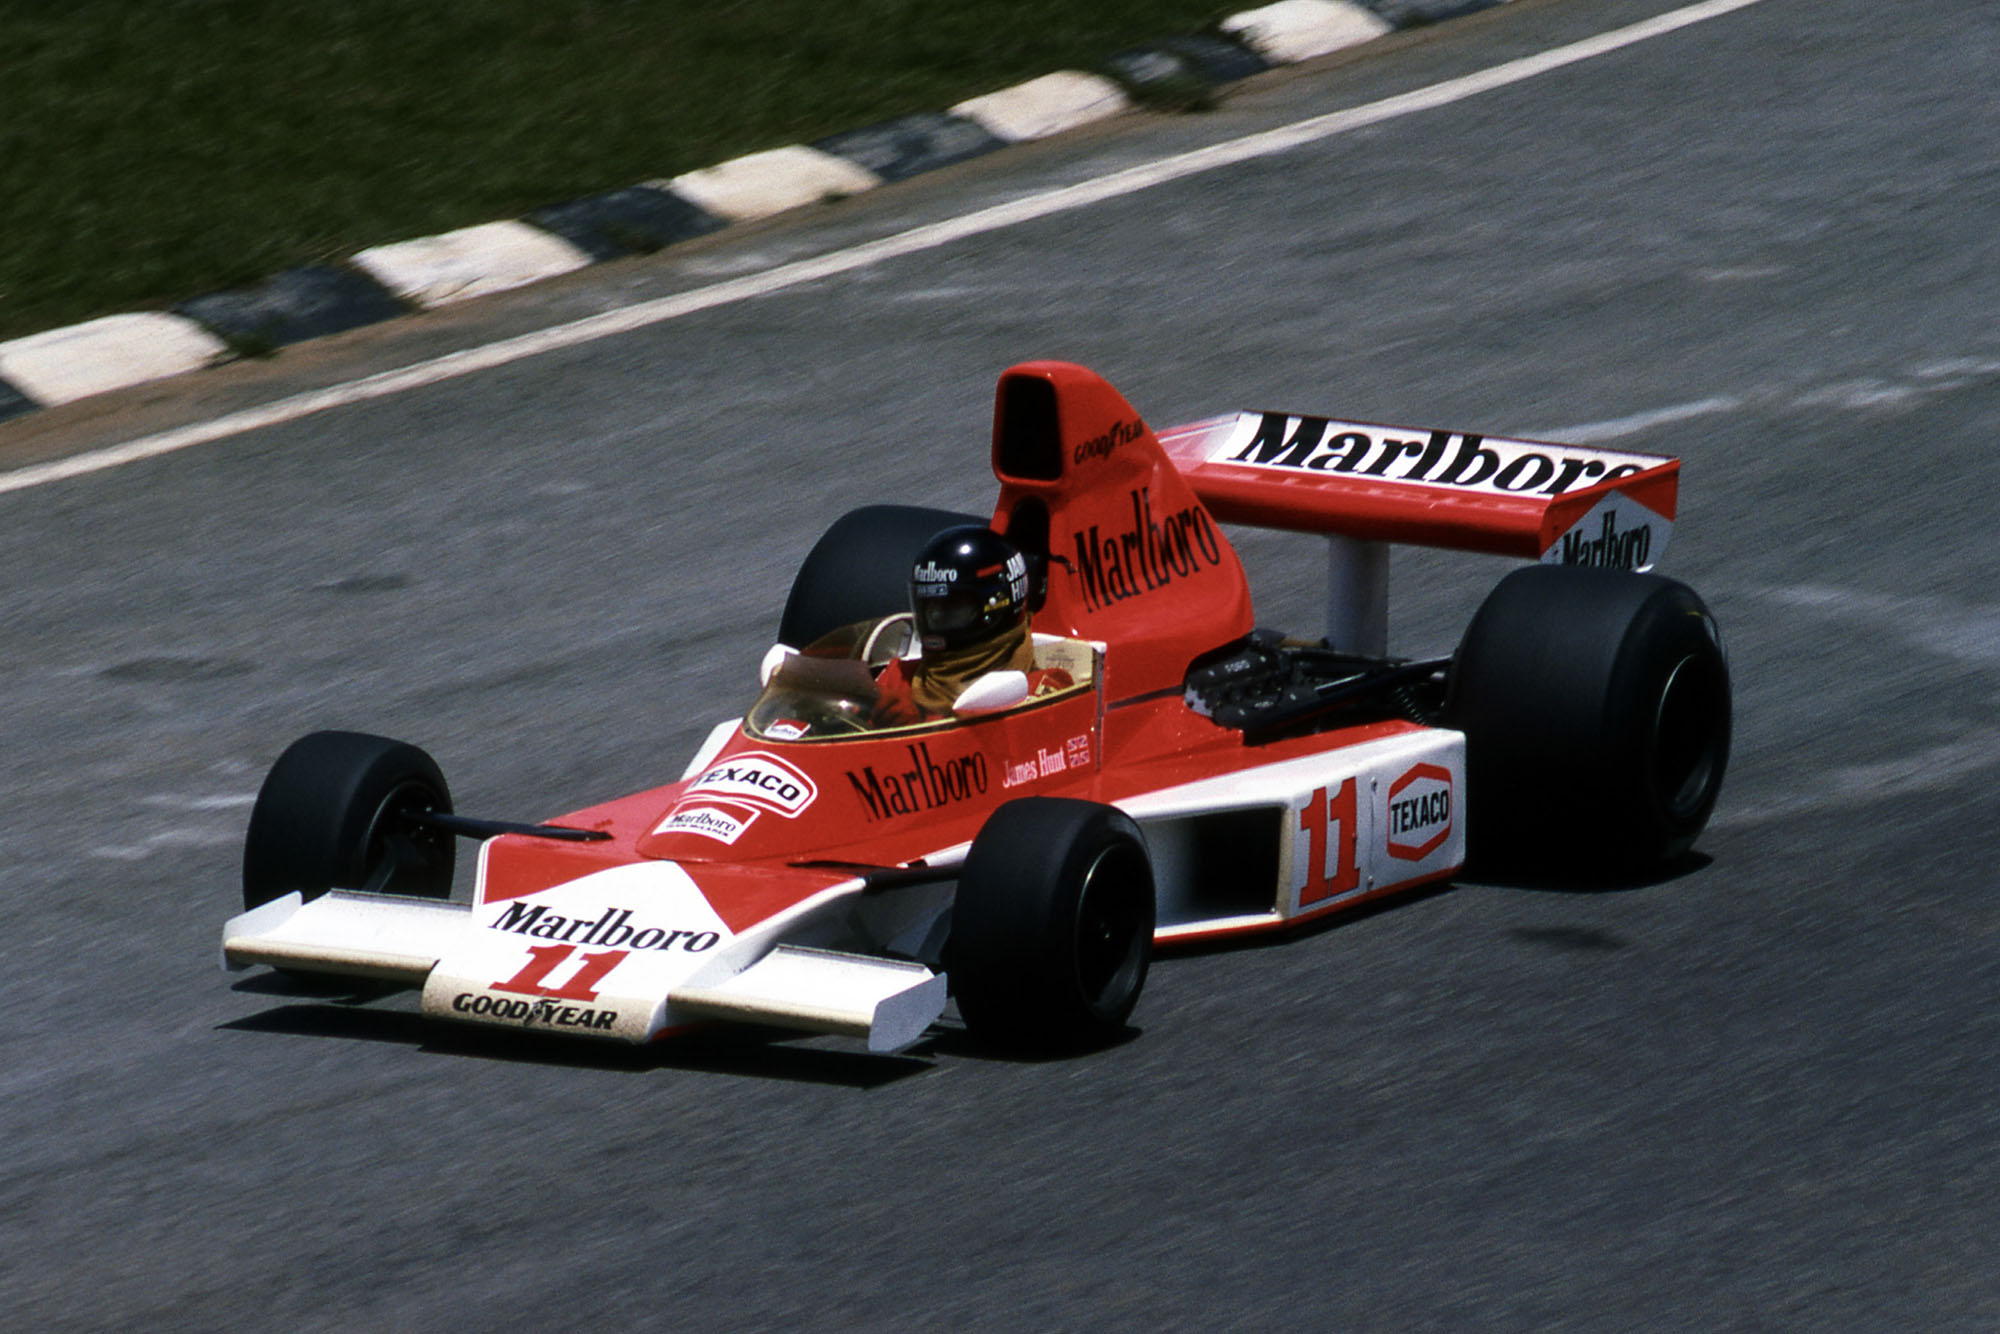 James Hunt driving for McLaren at the 1976 Brazilian Grand Prix, Interlagos.